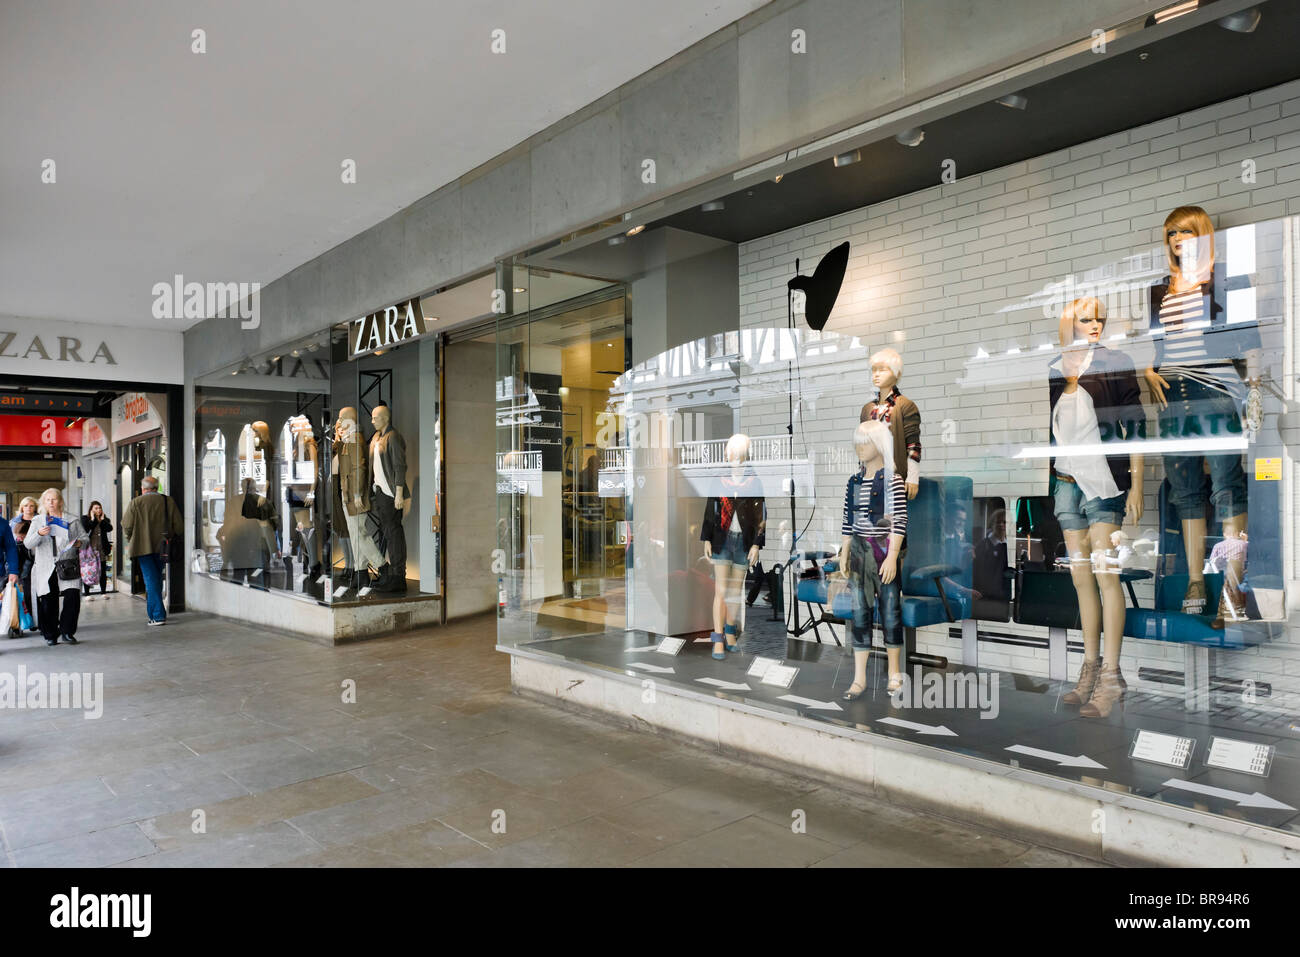 Zara store in Chester town centre, Cheshire, England, UK - Stock Image